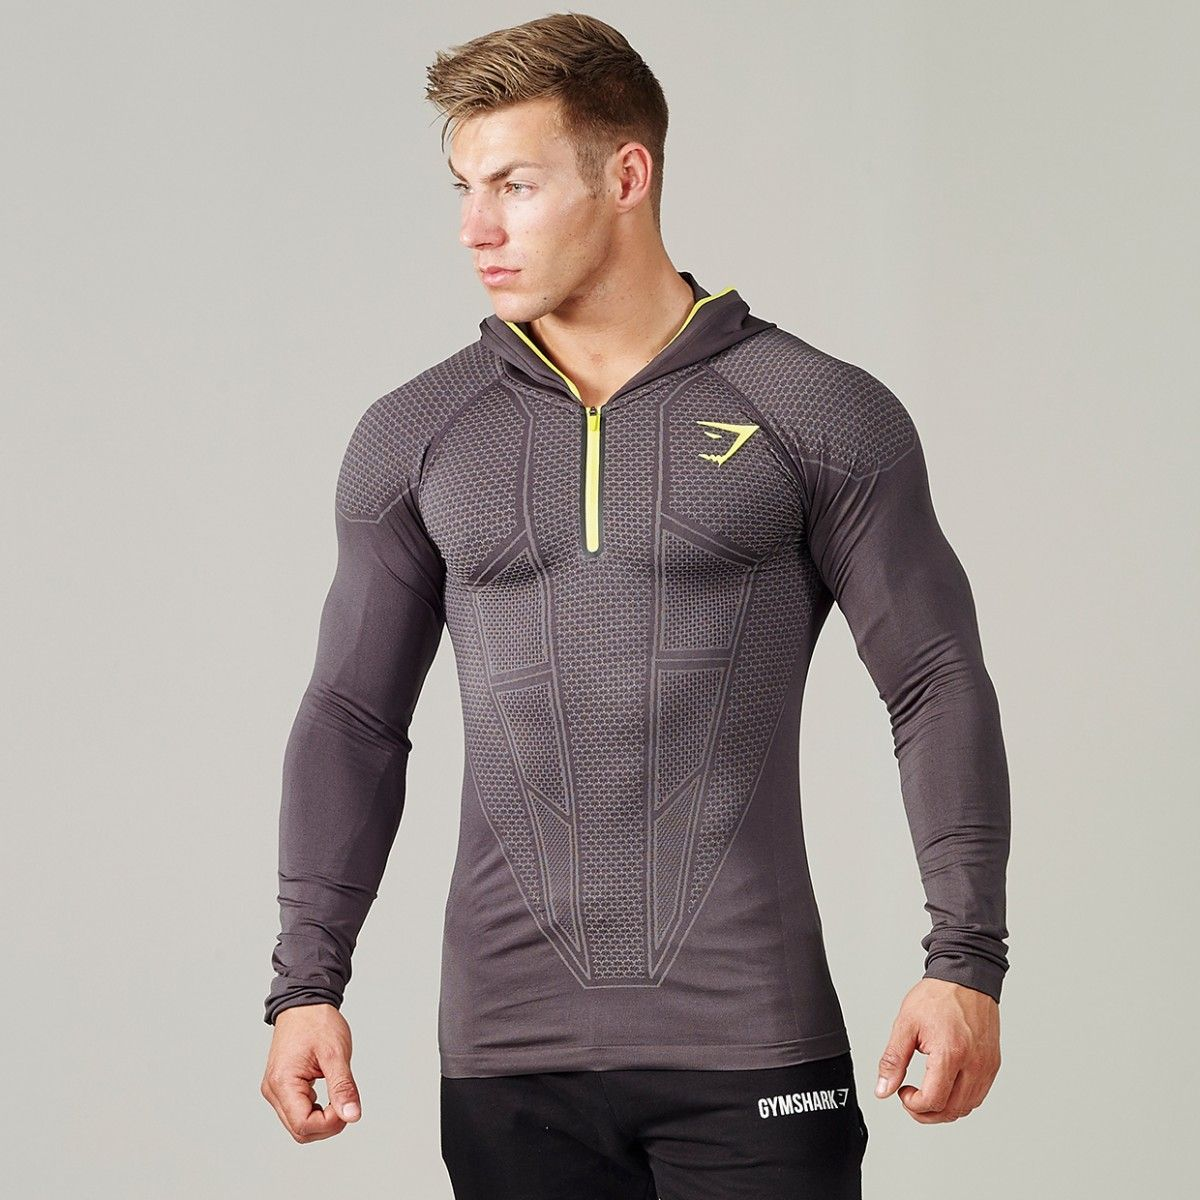 modern design purchase genuine new selection Gymshark Onyx Seamless Hooded Top - Charcoal - Hoodies ...